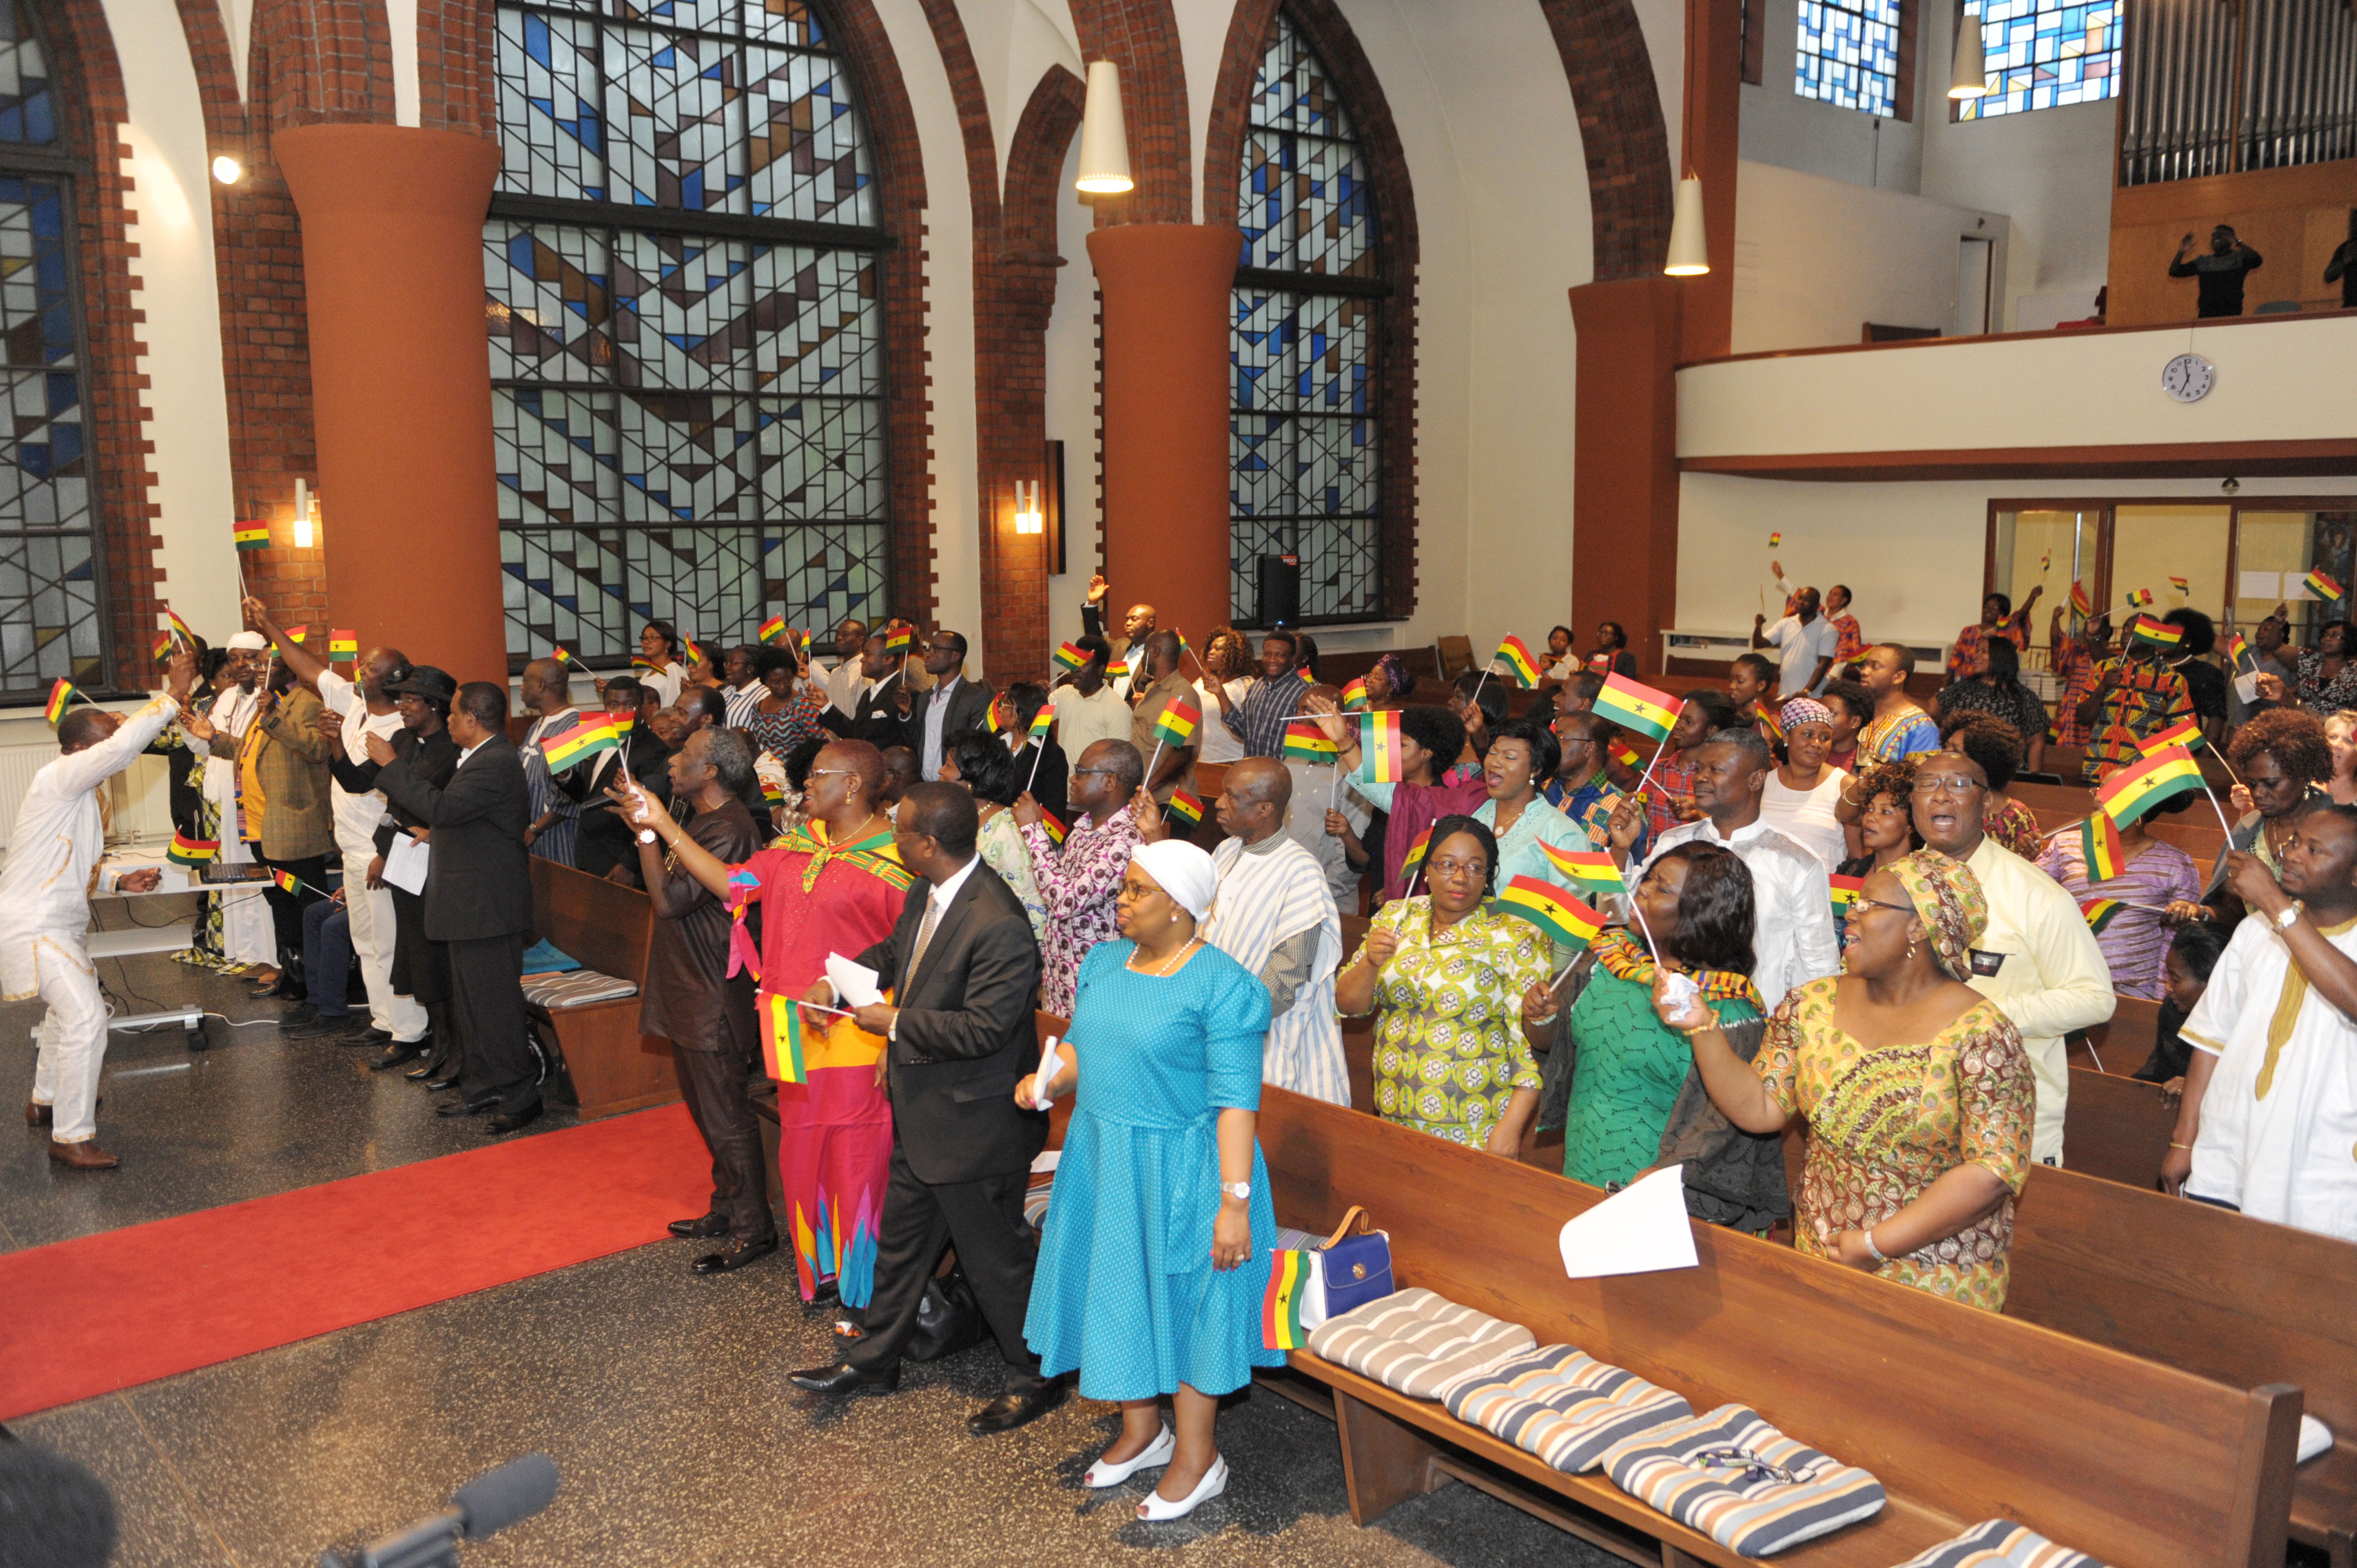 Ghanaians in Germany prayed for a peaceful election, unity in the country before and after the elections